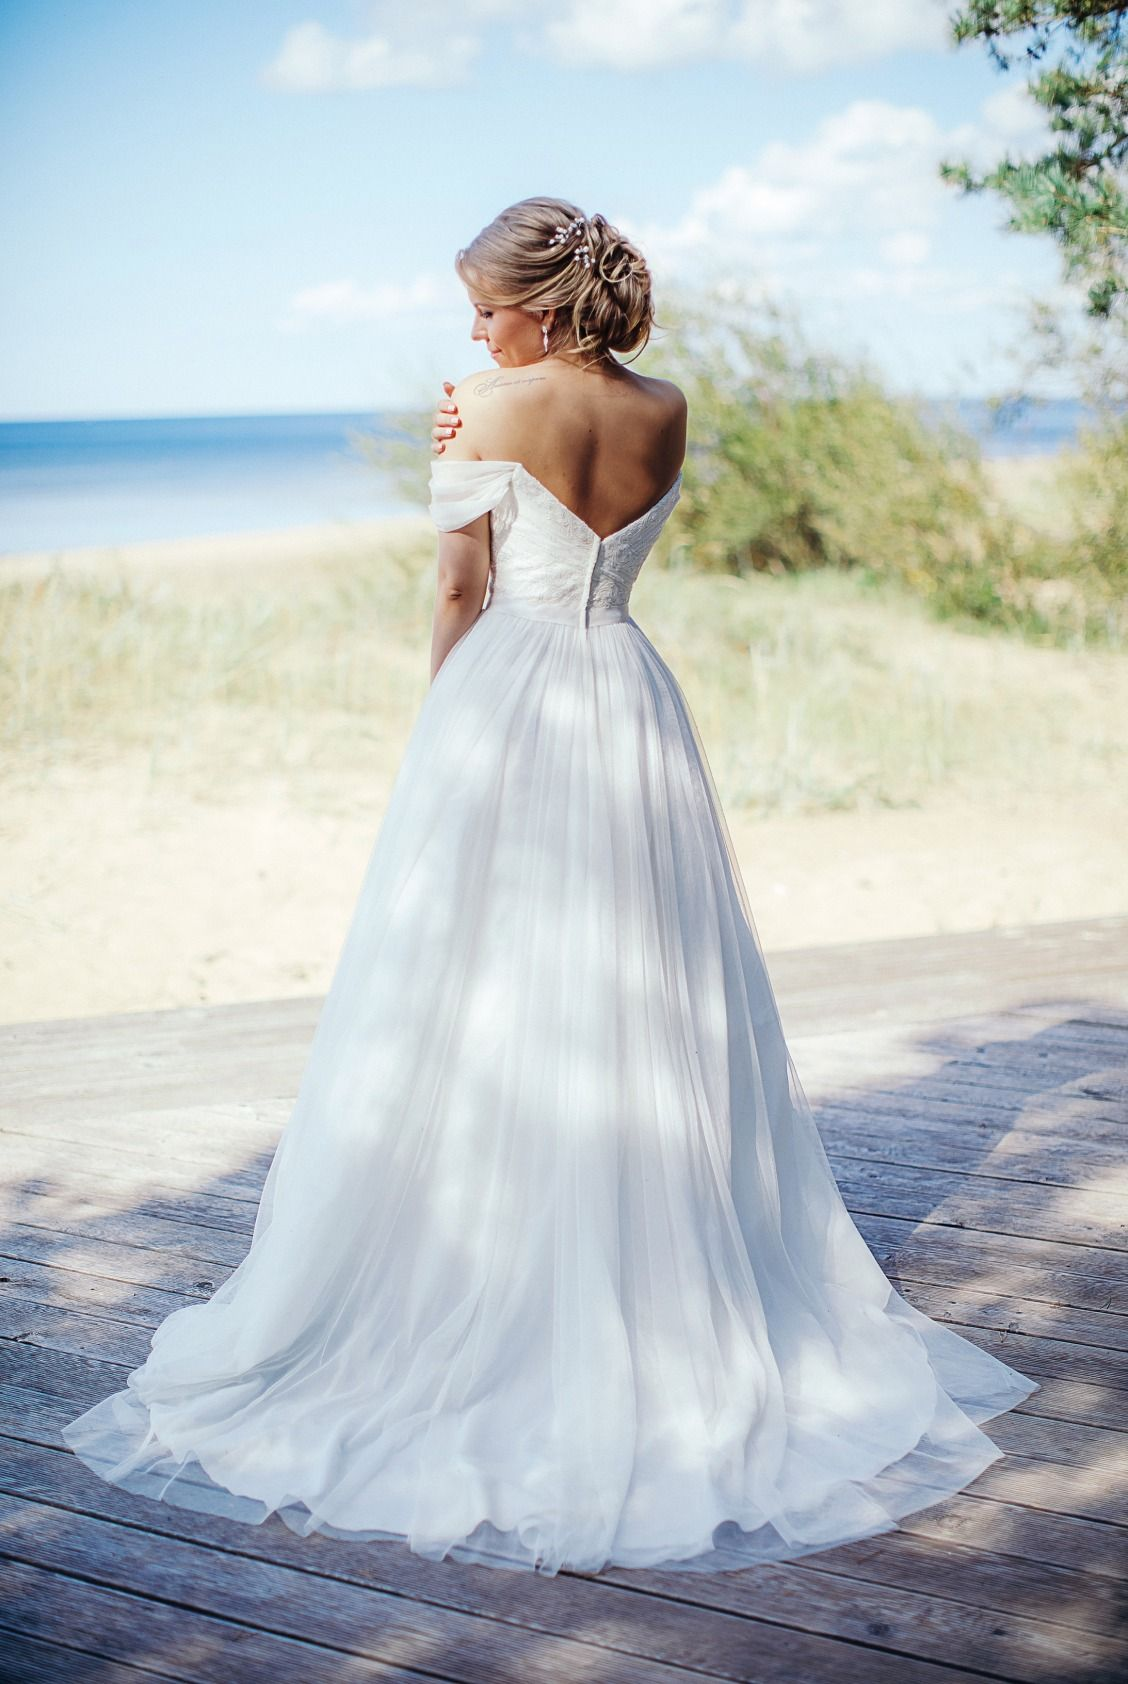 9 BALL GOWN WEDDING DRESSES YOU ARE SURE TO LOVE | Beach weddings ...